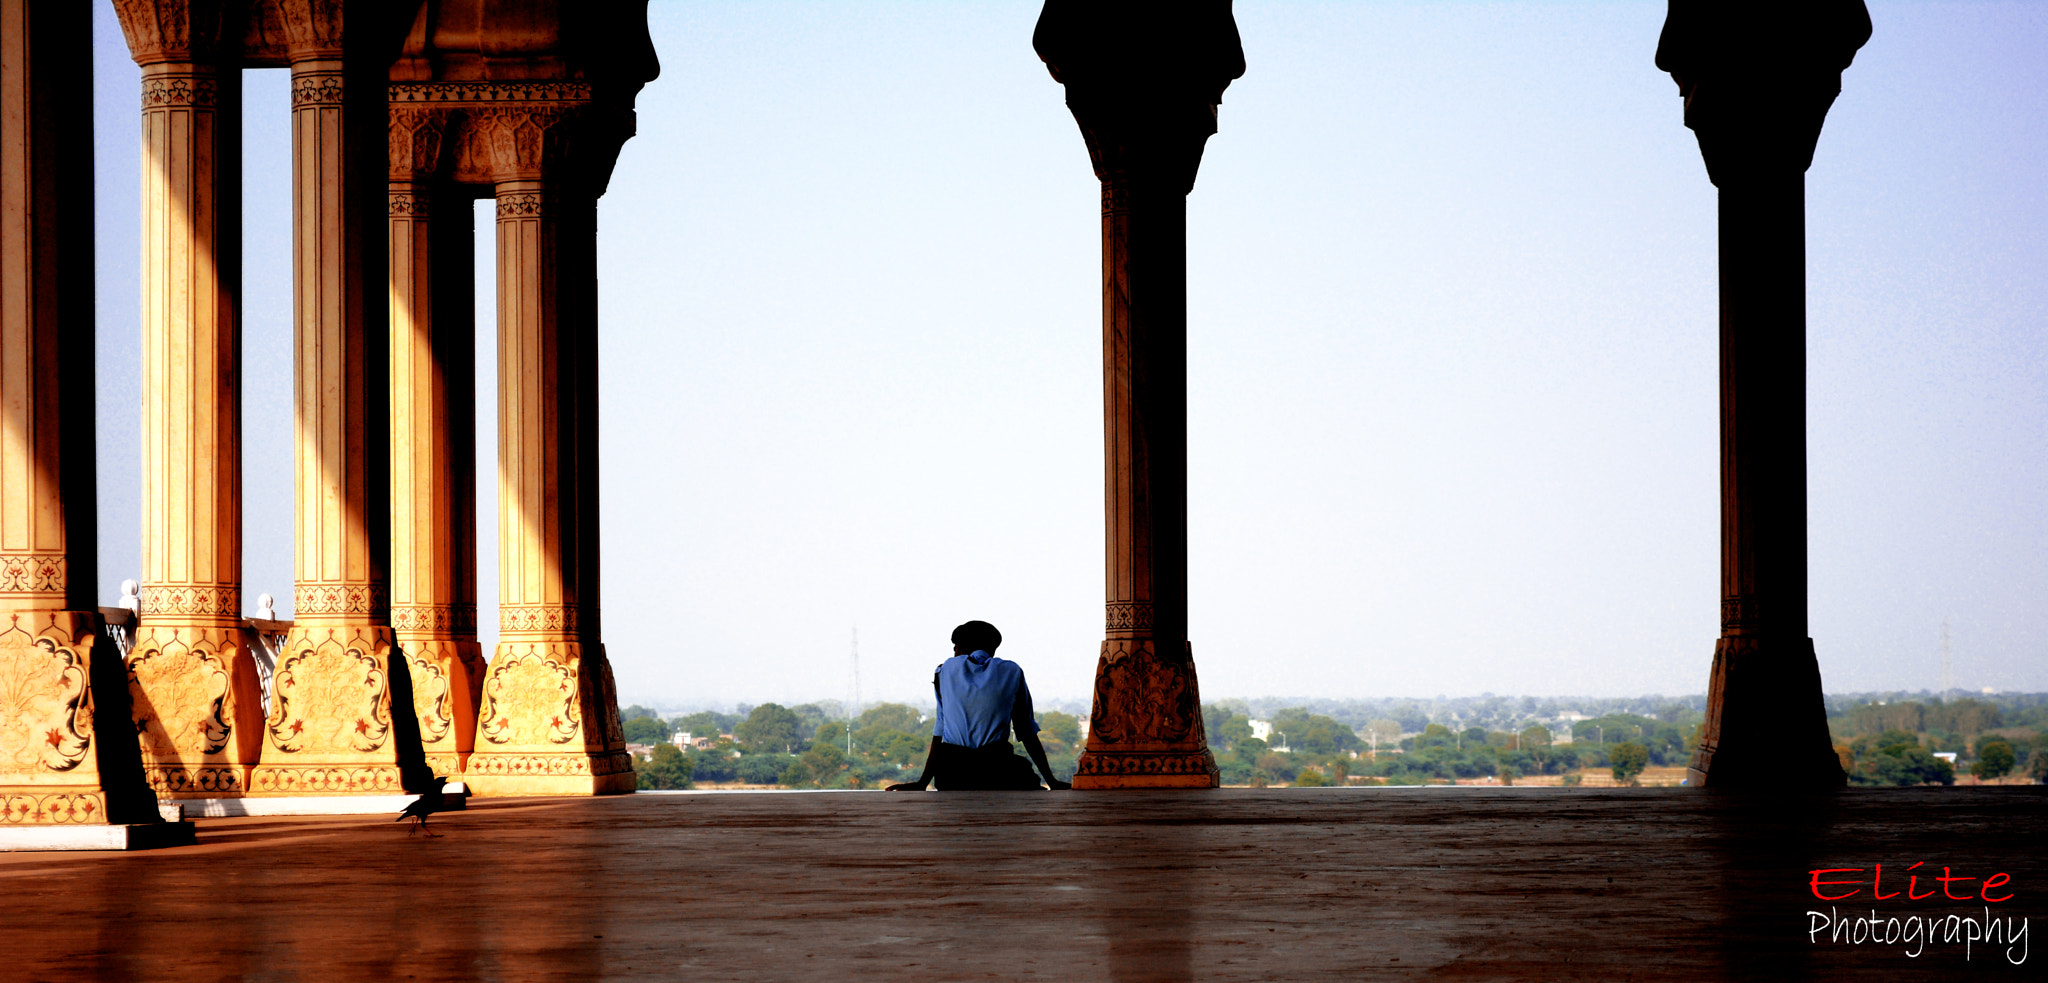 Photograph sitting alone by Mahommed kashif on 500px